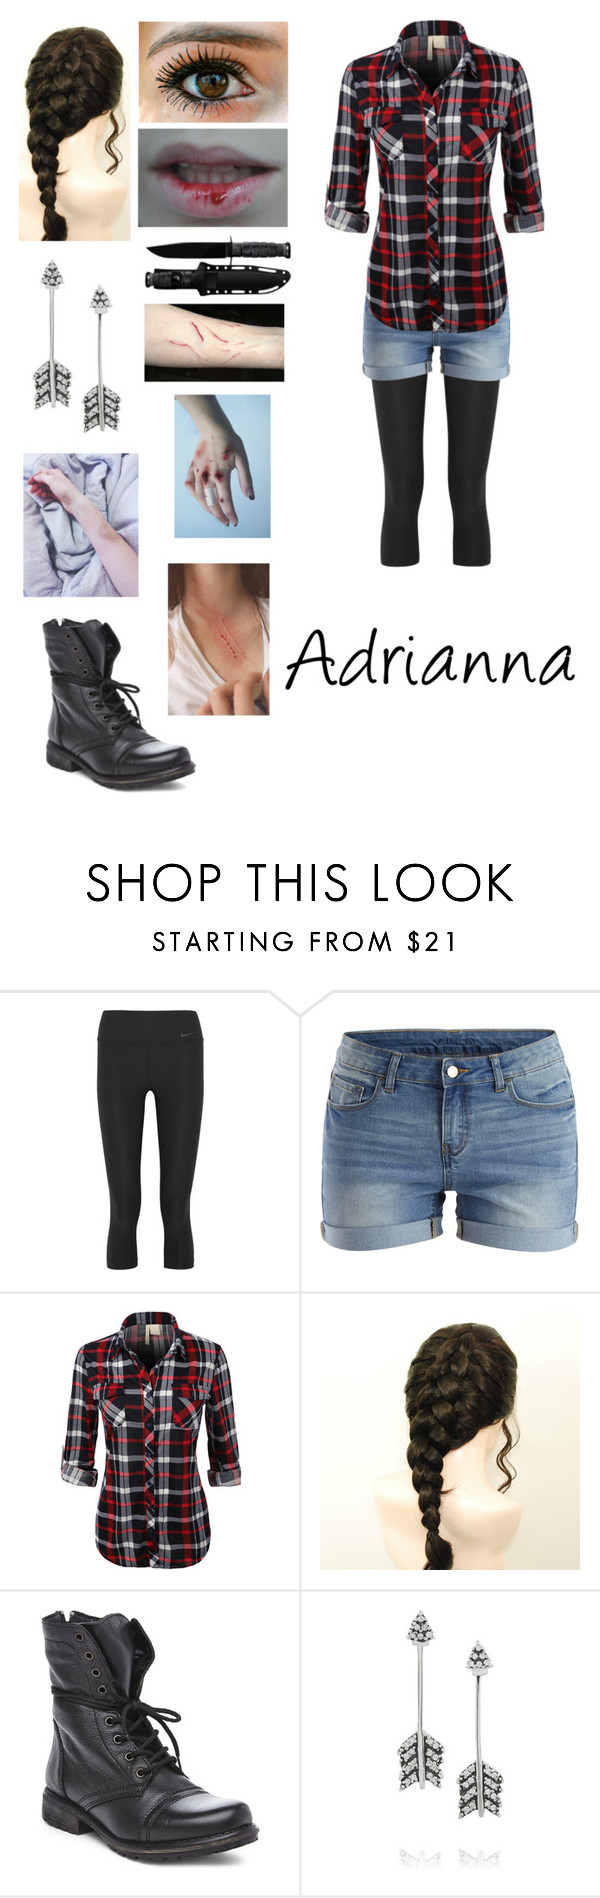 """Adrianna"" by foxykitty ❤ liked on Polyvore featuring NIKE, VILA, Steve Madden, Pamela Love and Honour"